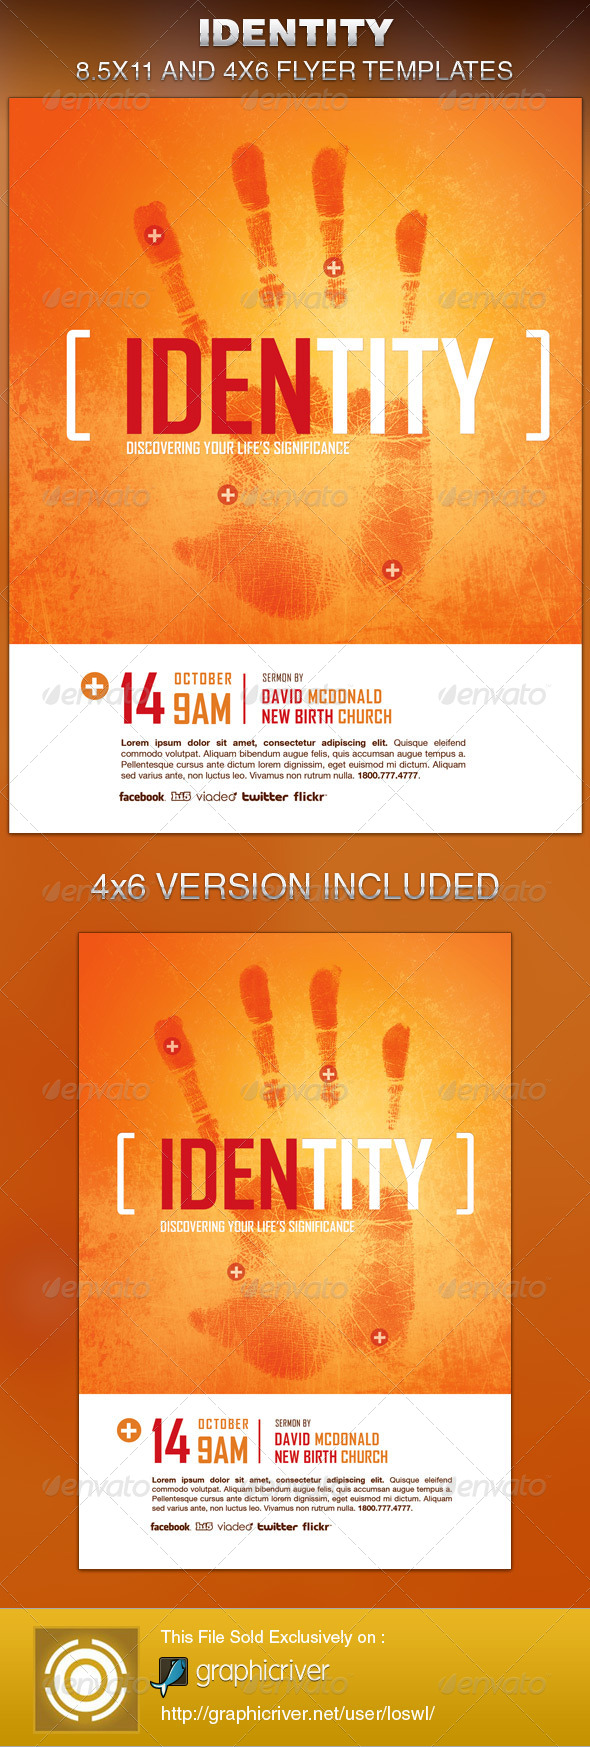 Identity Church Flyer Template - Church Flyers